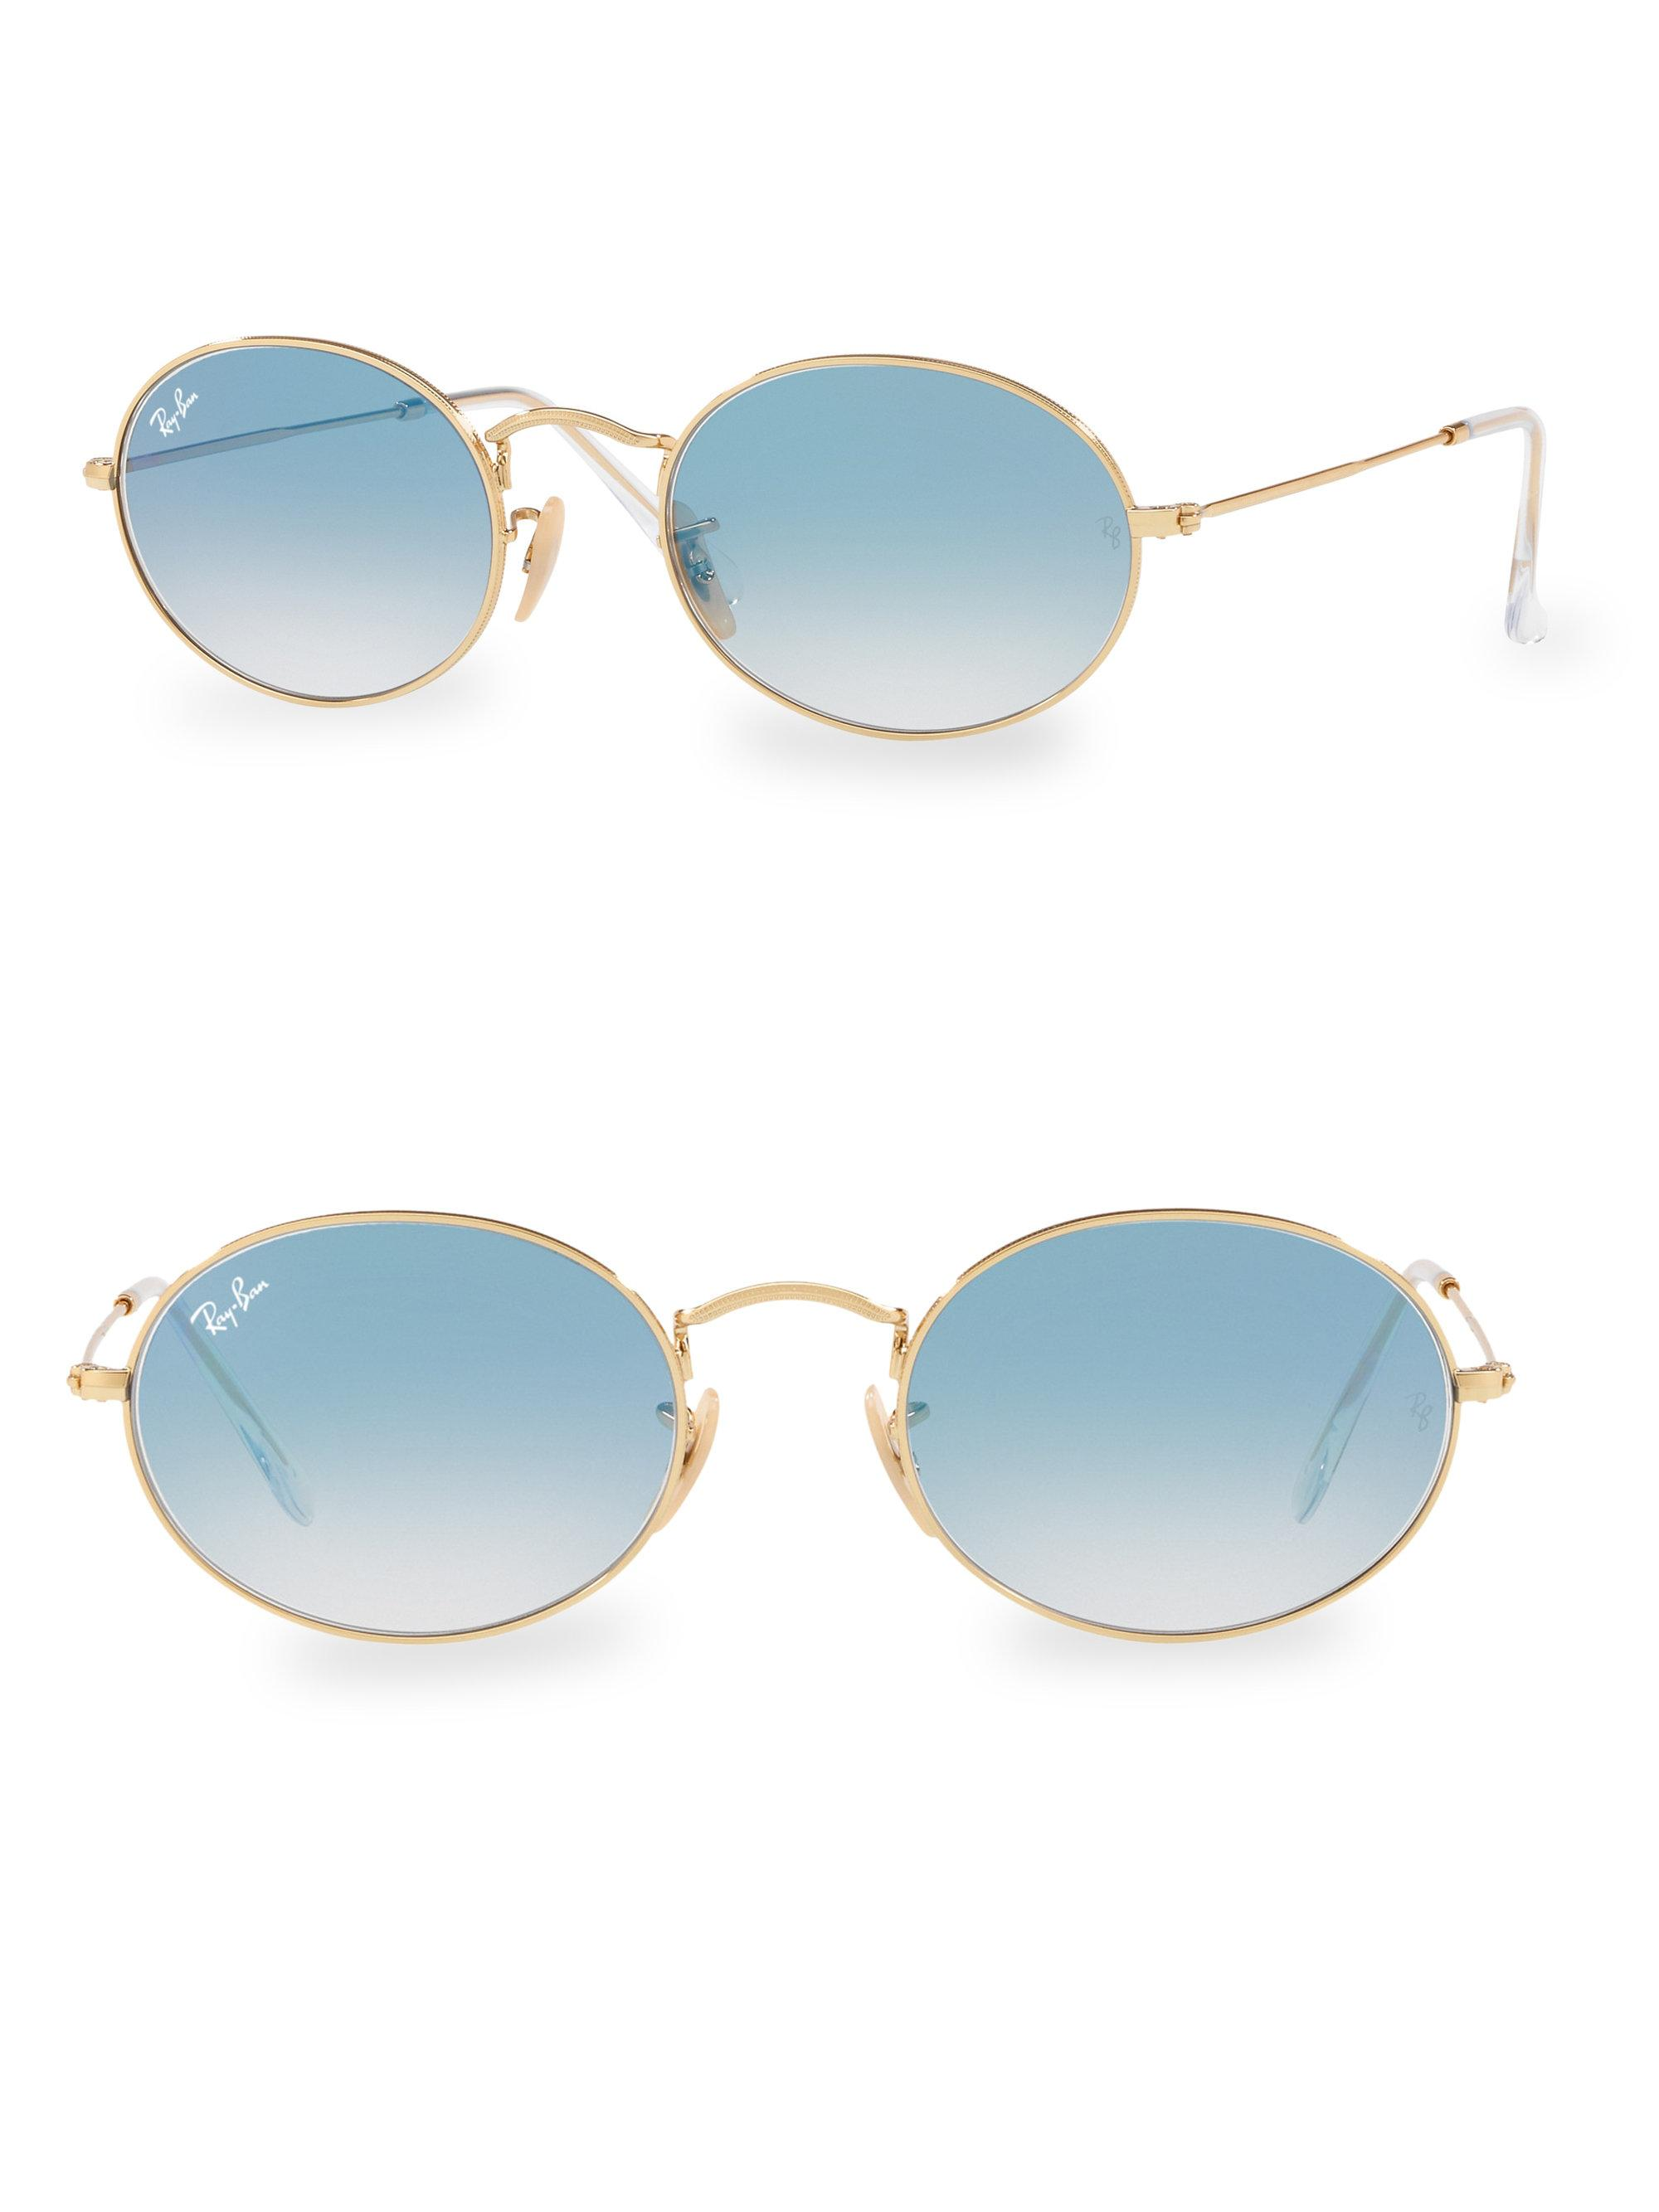 Lyst - Ray-Ban 54mm Gold Oval Wire Sunglasses in Metallic